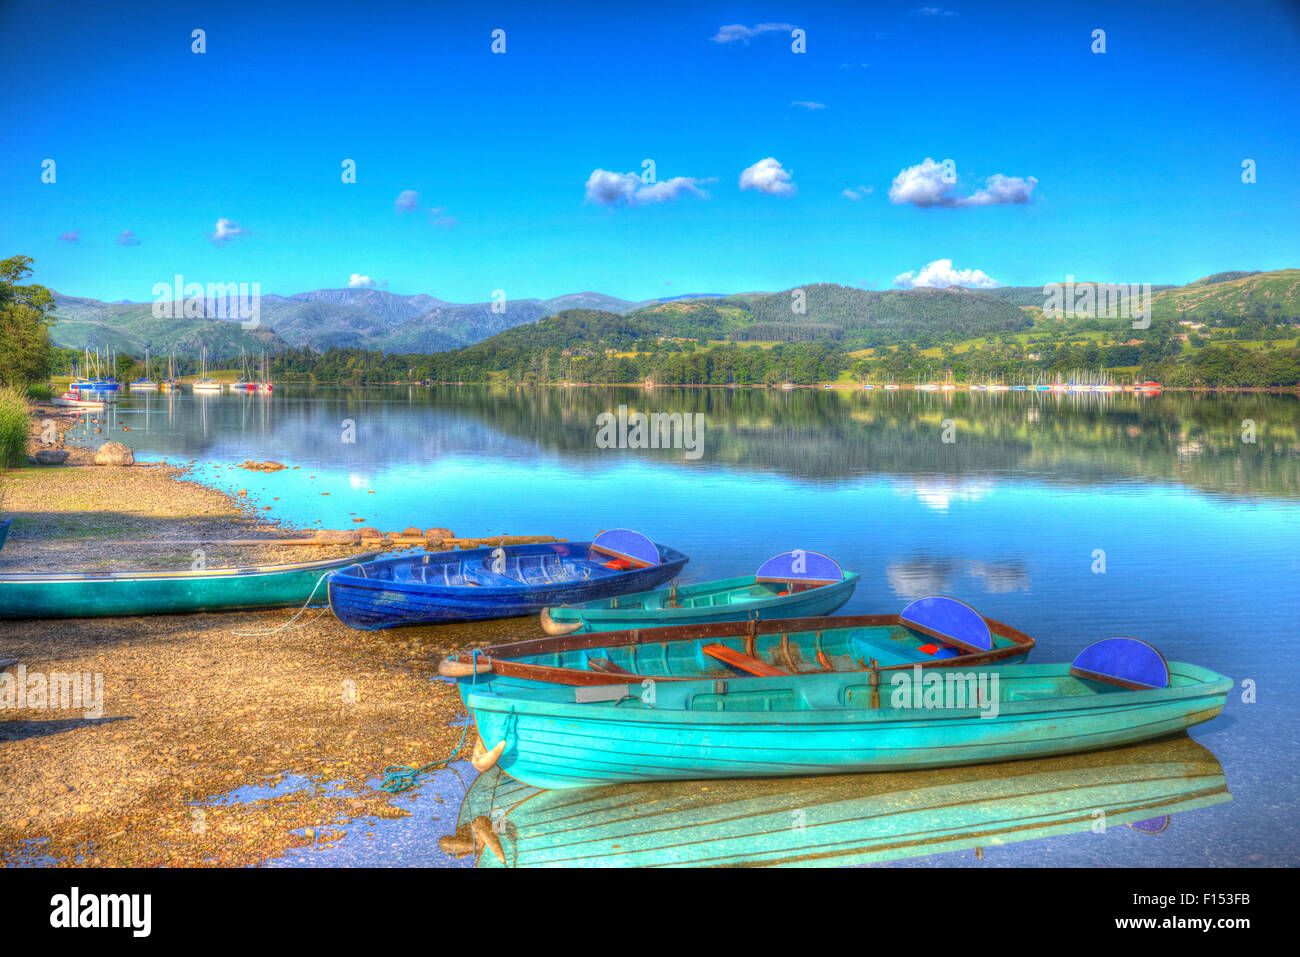 Peace and calm a restful scene rowing boats on a lake with mountains The Lake District England UK at Ullswater - Stock Image